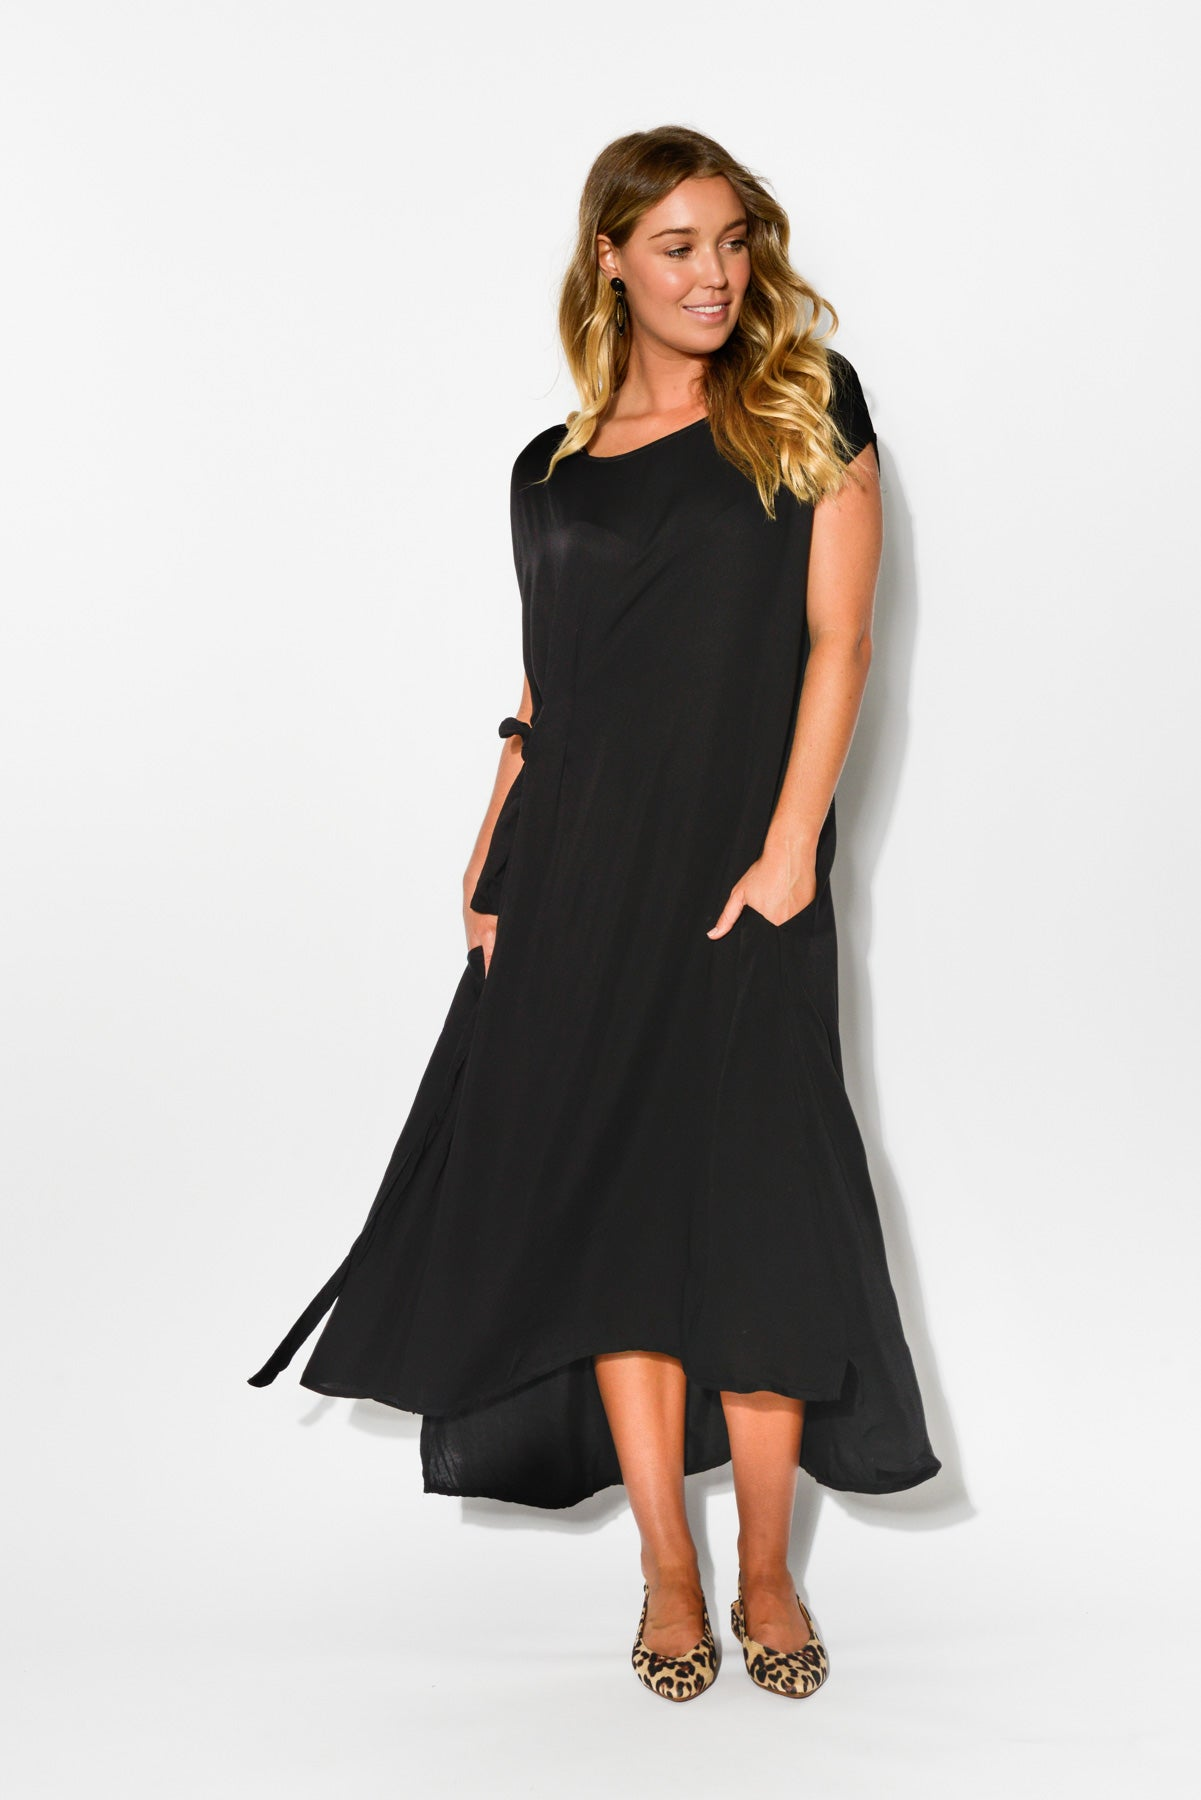 Charm Black Midi Dress - Blue Bungalow ... 79358924f